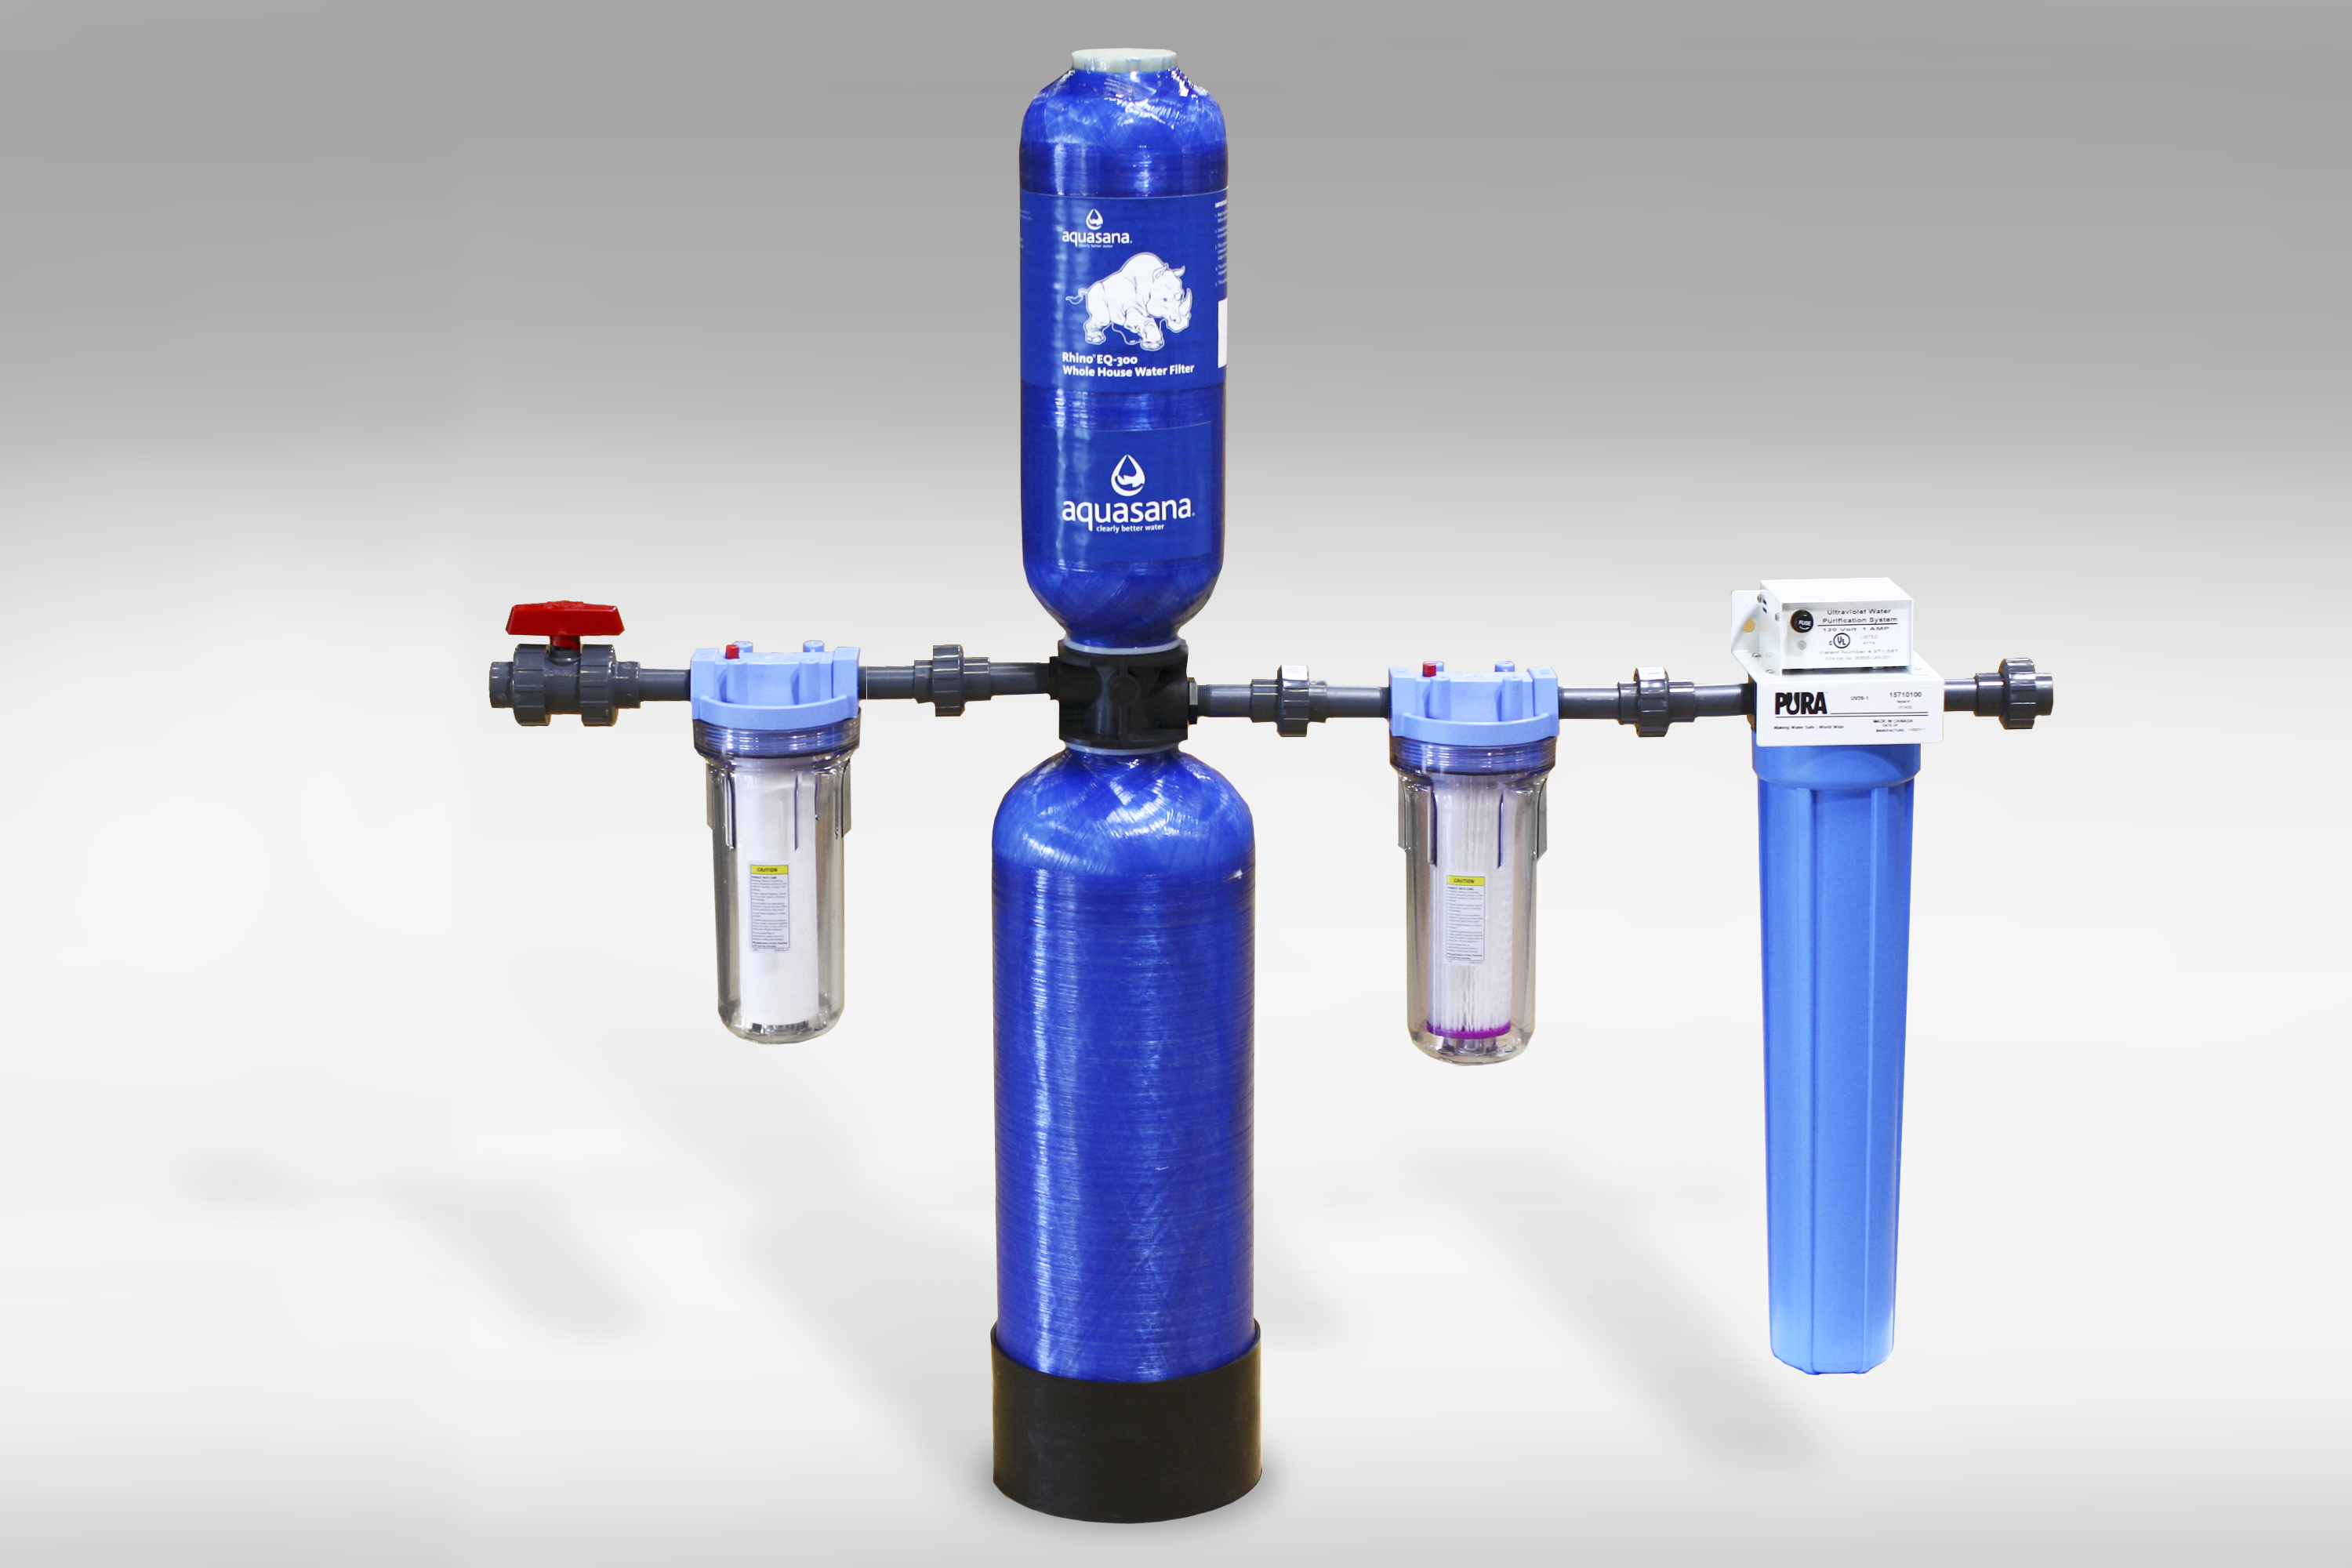 Whole House Water Filter Systems Celebrates 10 Year Anniversary with